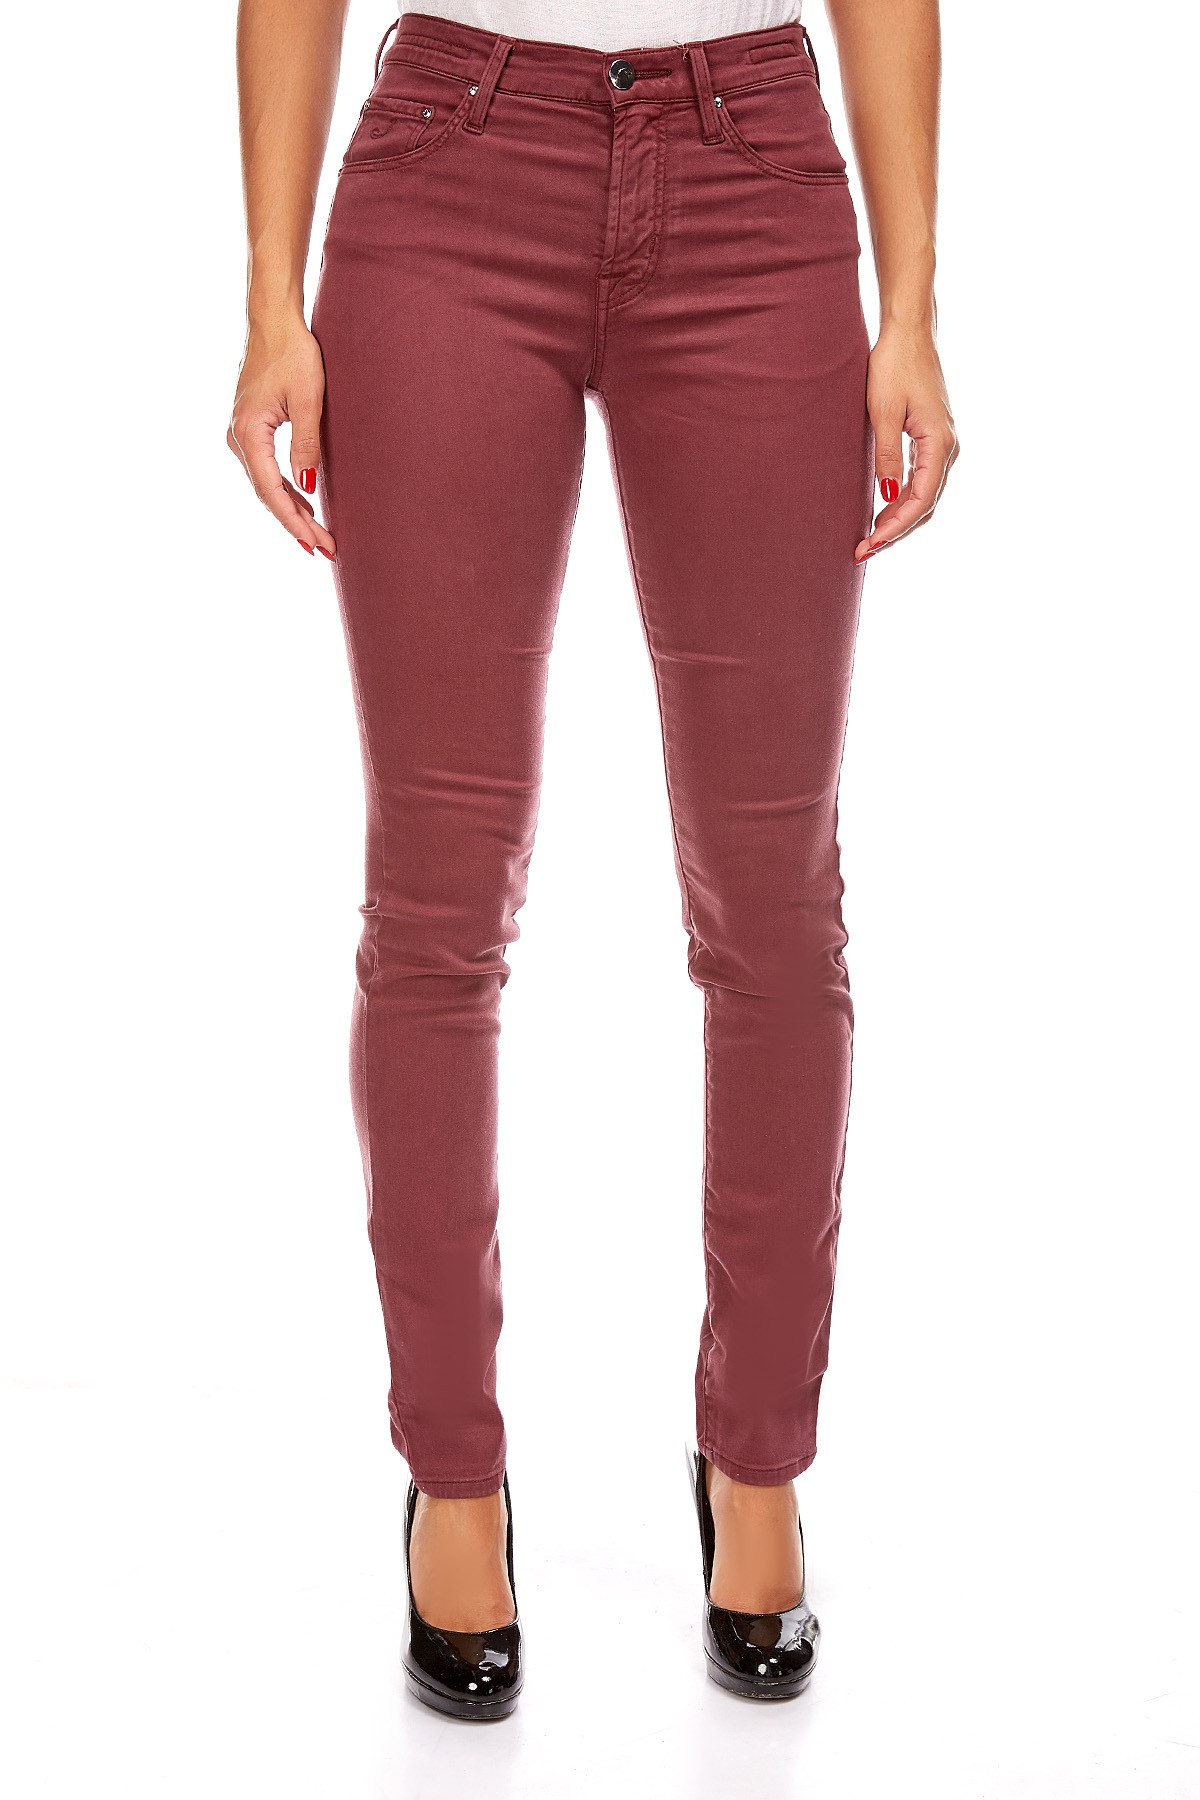 S660 € Slim Bordeaux Femme 00227 174 Kimberly Jeans Cohen 00 Jacob qzUVSMp